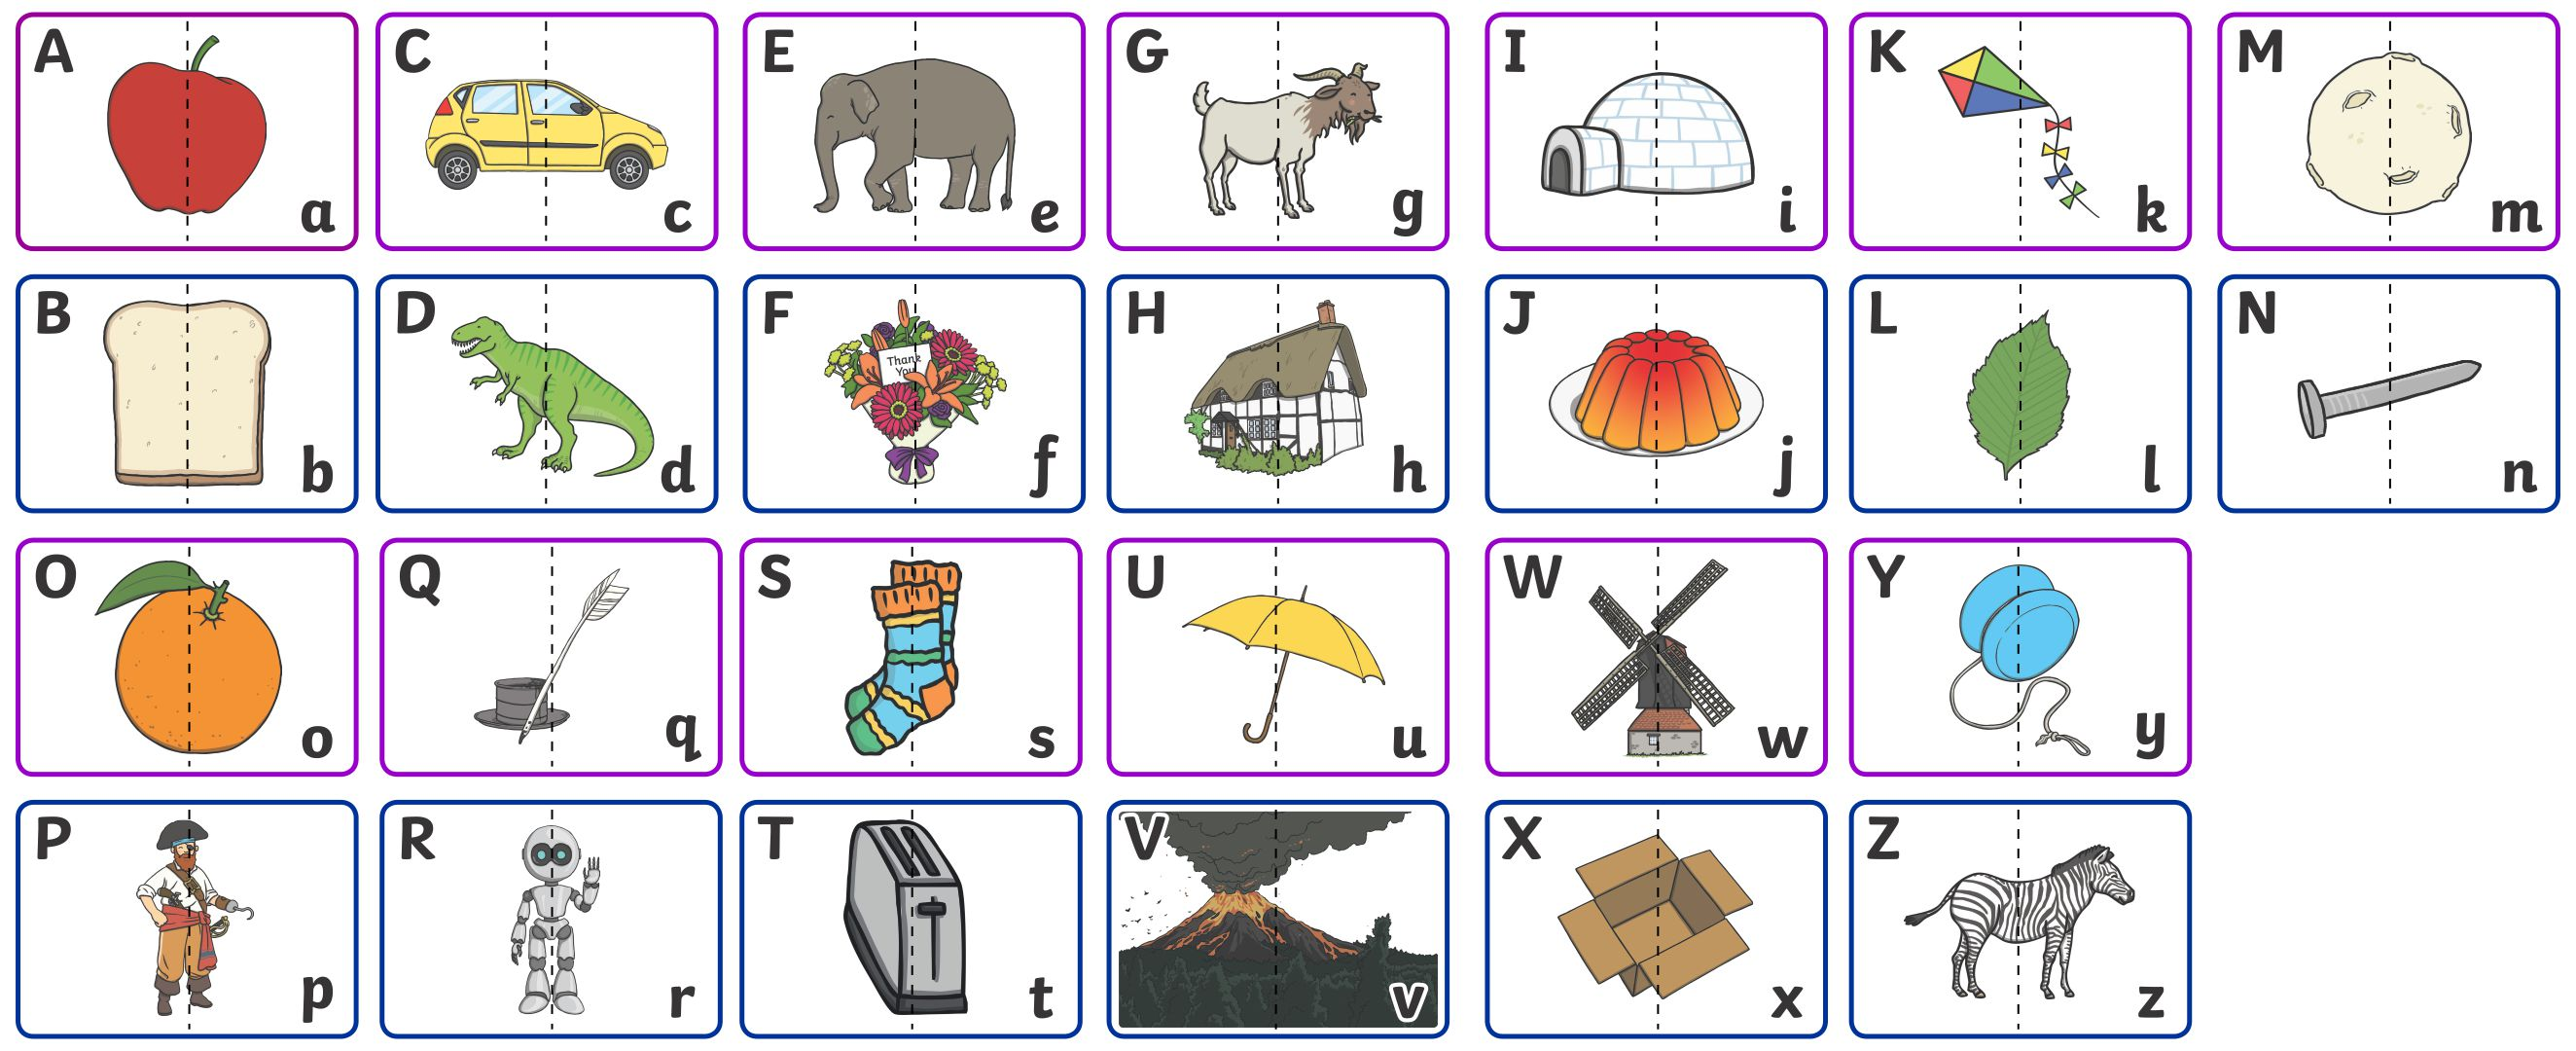 7 Best Alphabet Matching Printable Worksheets